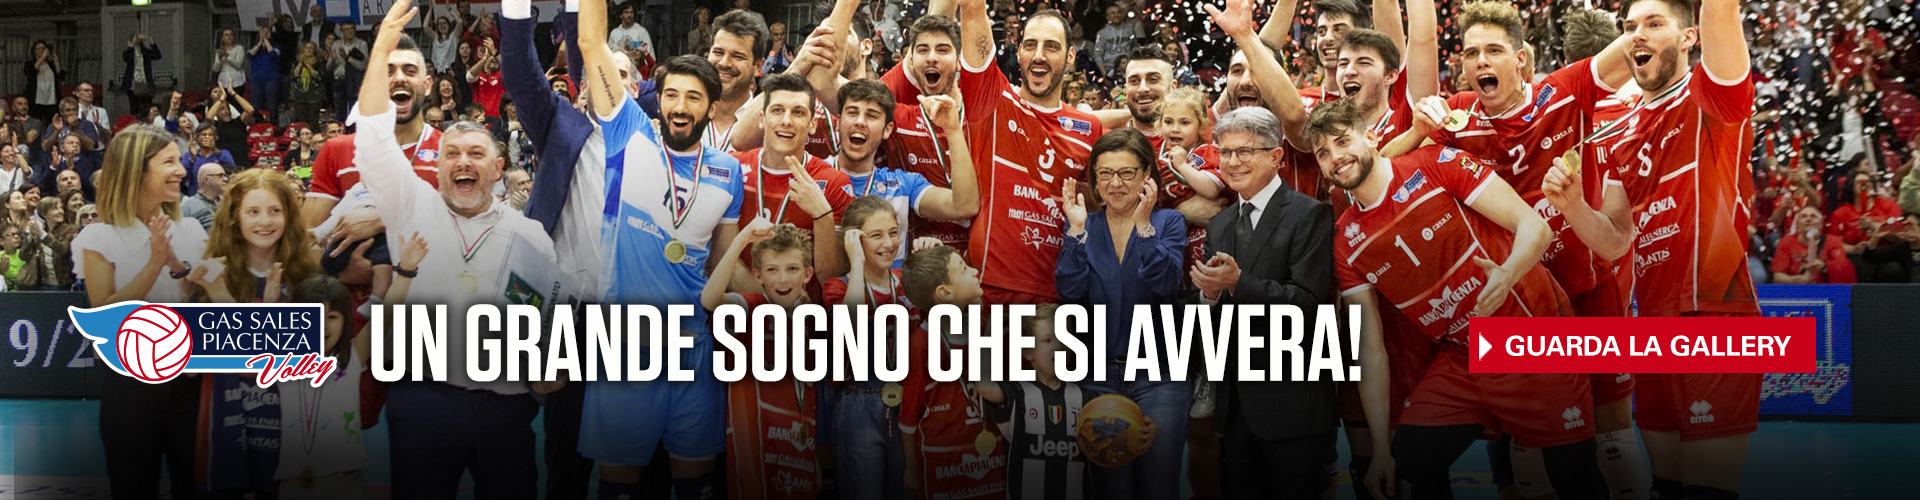 Gas Sales Piacenza Volley - Vittoria Superlega